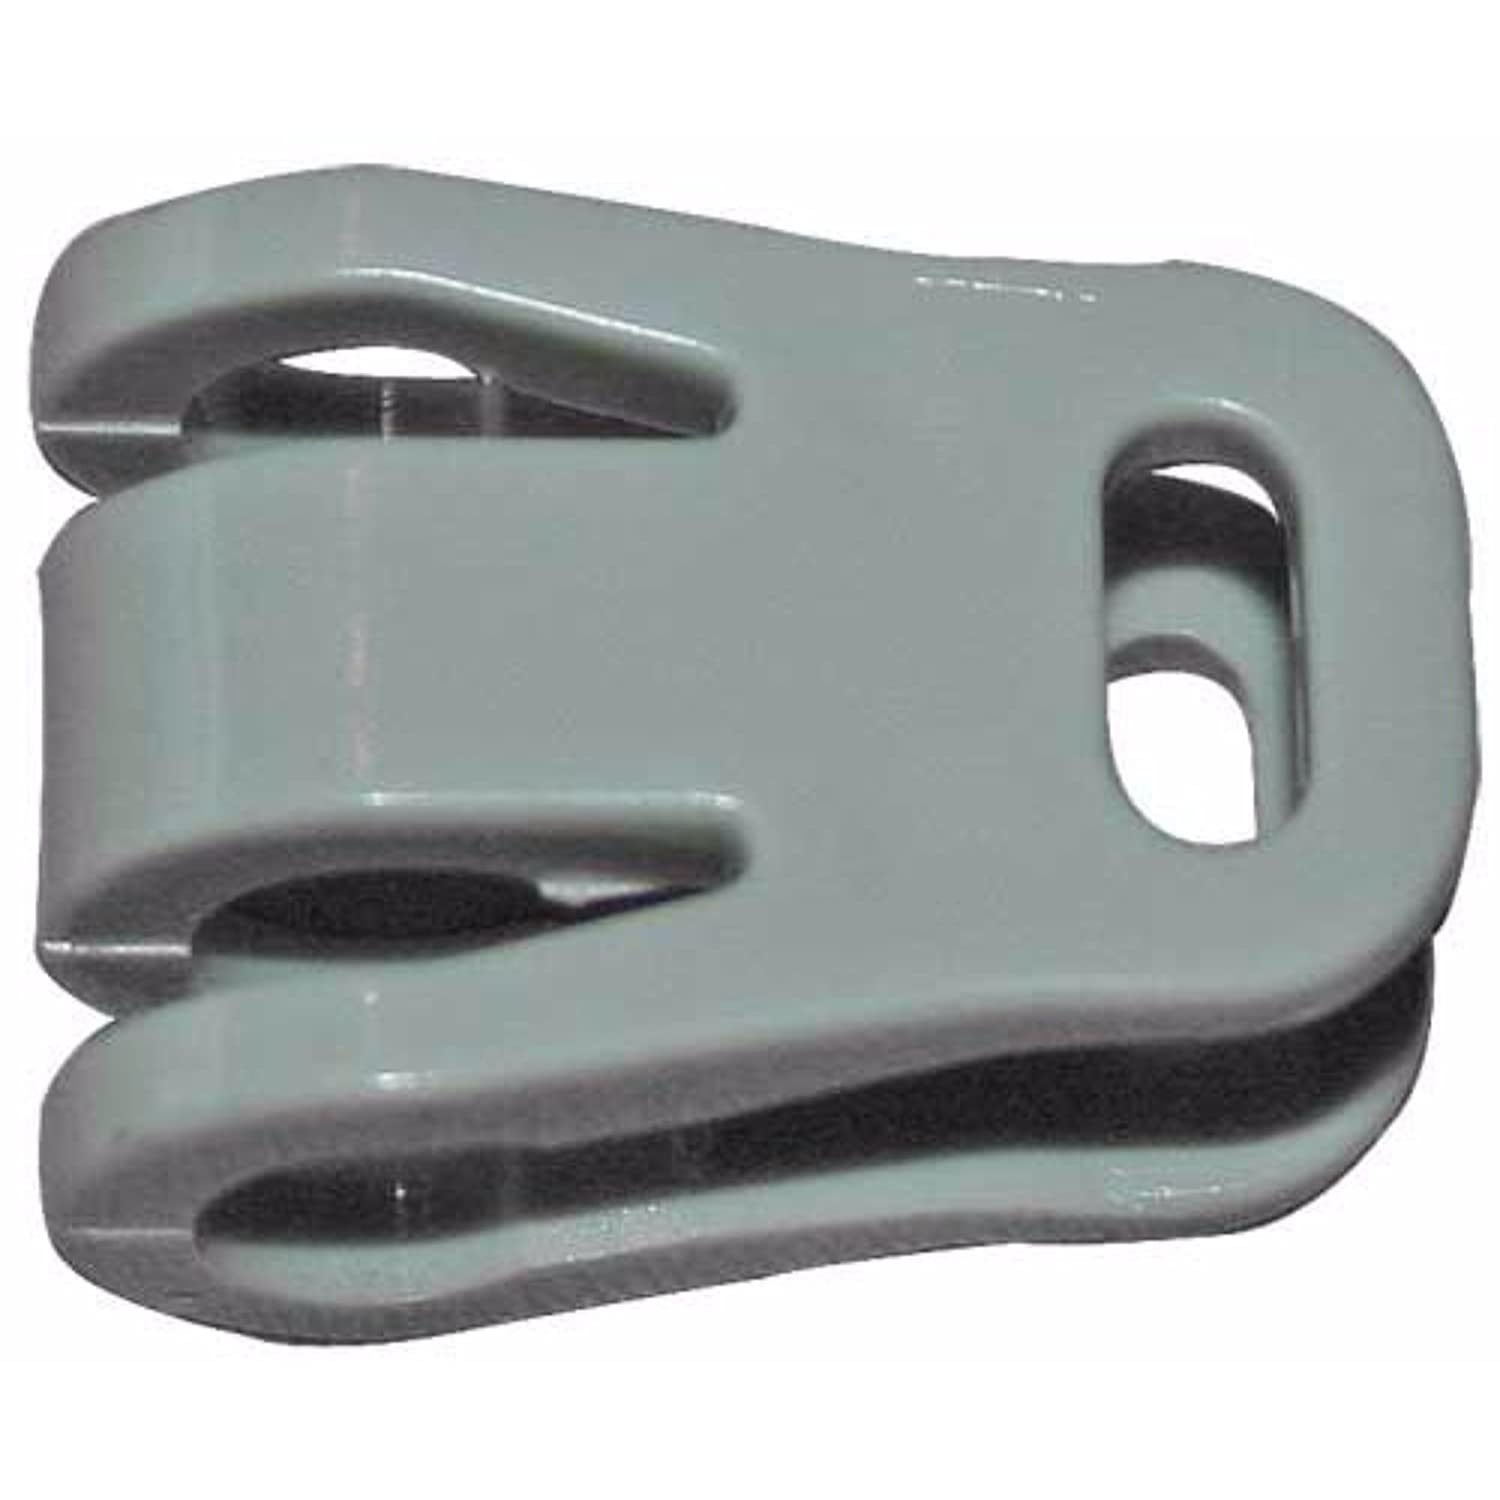 Dometic Replacement Grating Lock (One Size) (Grey) UTMD1202_1